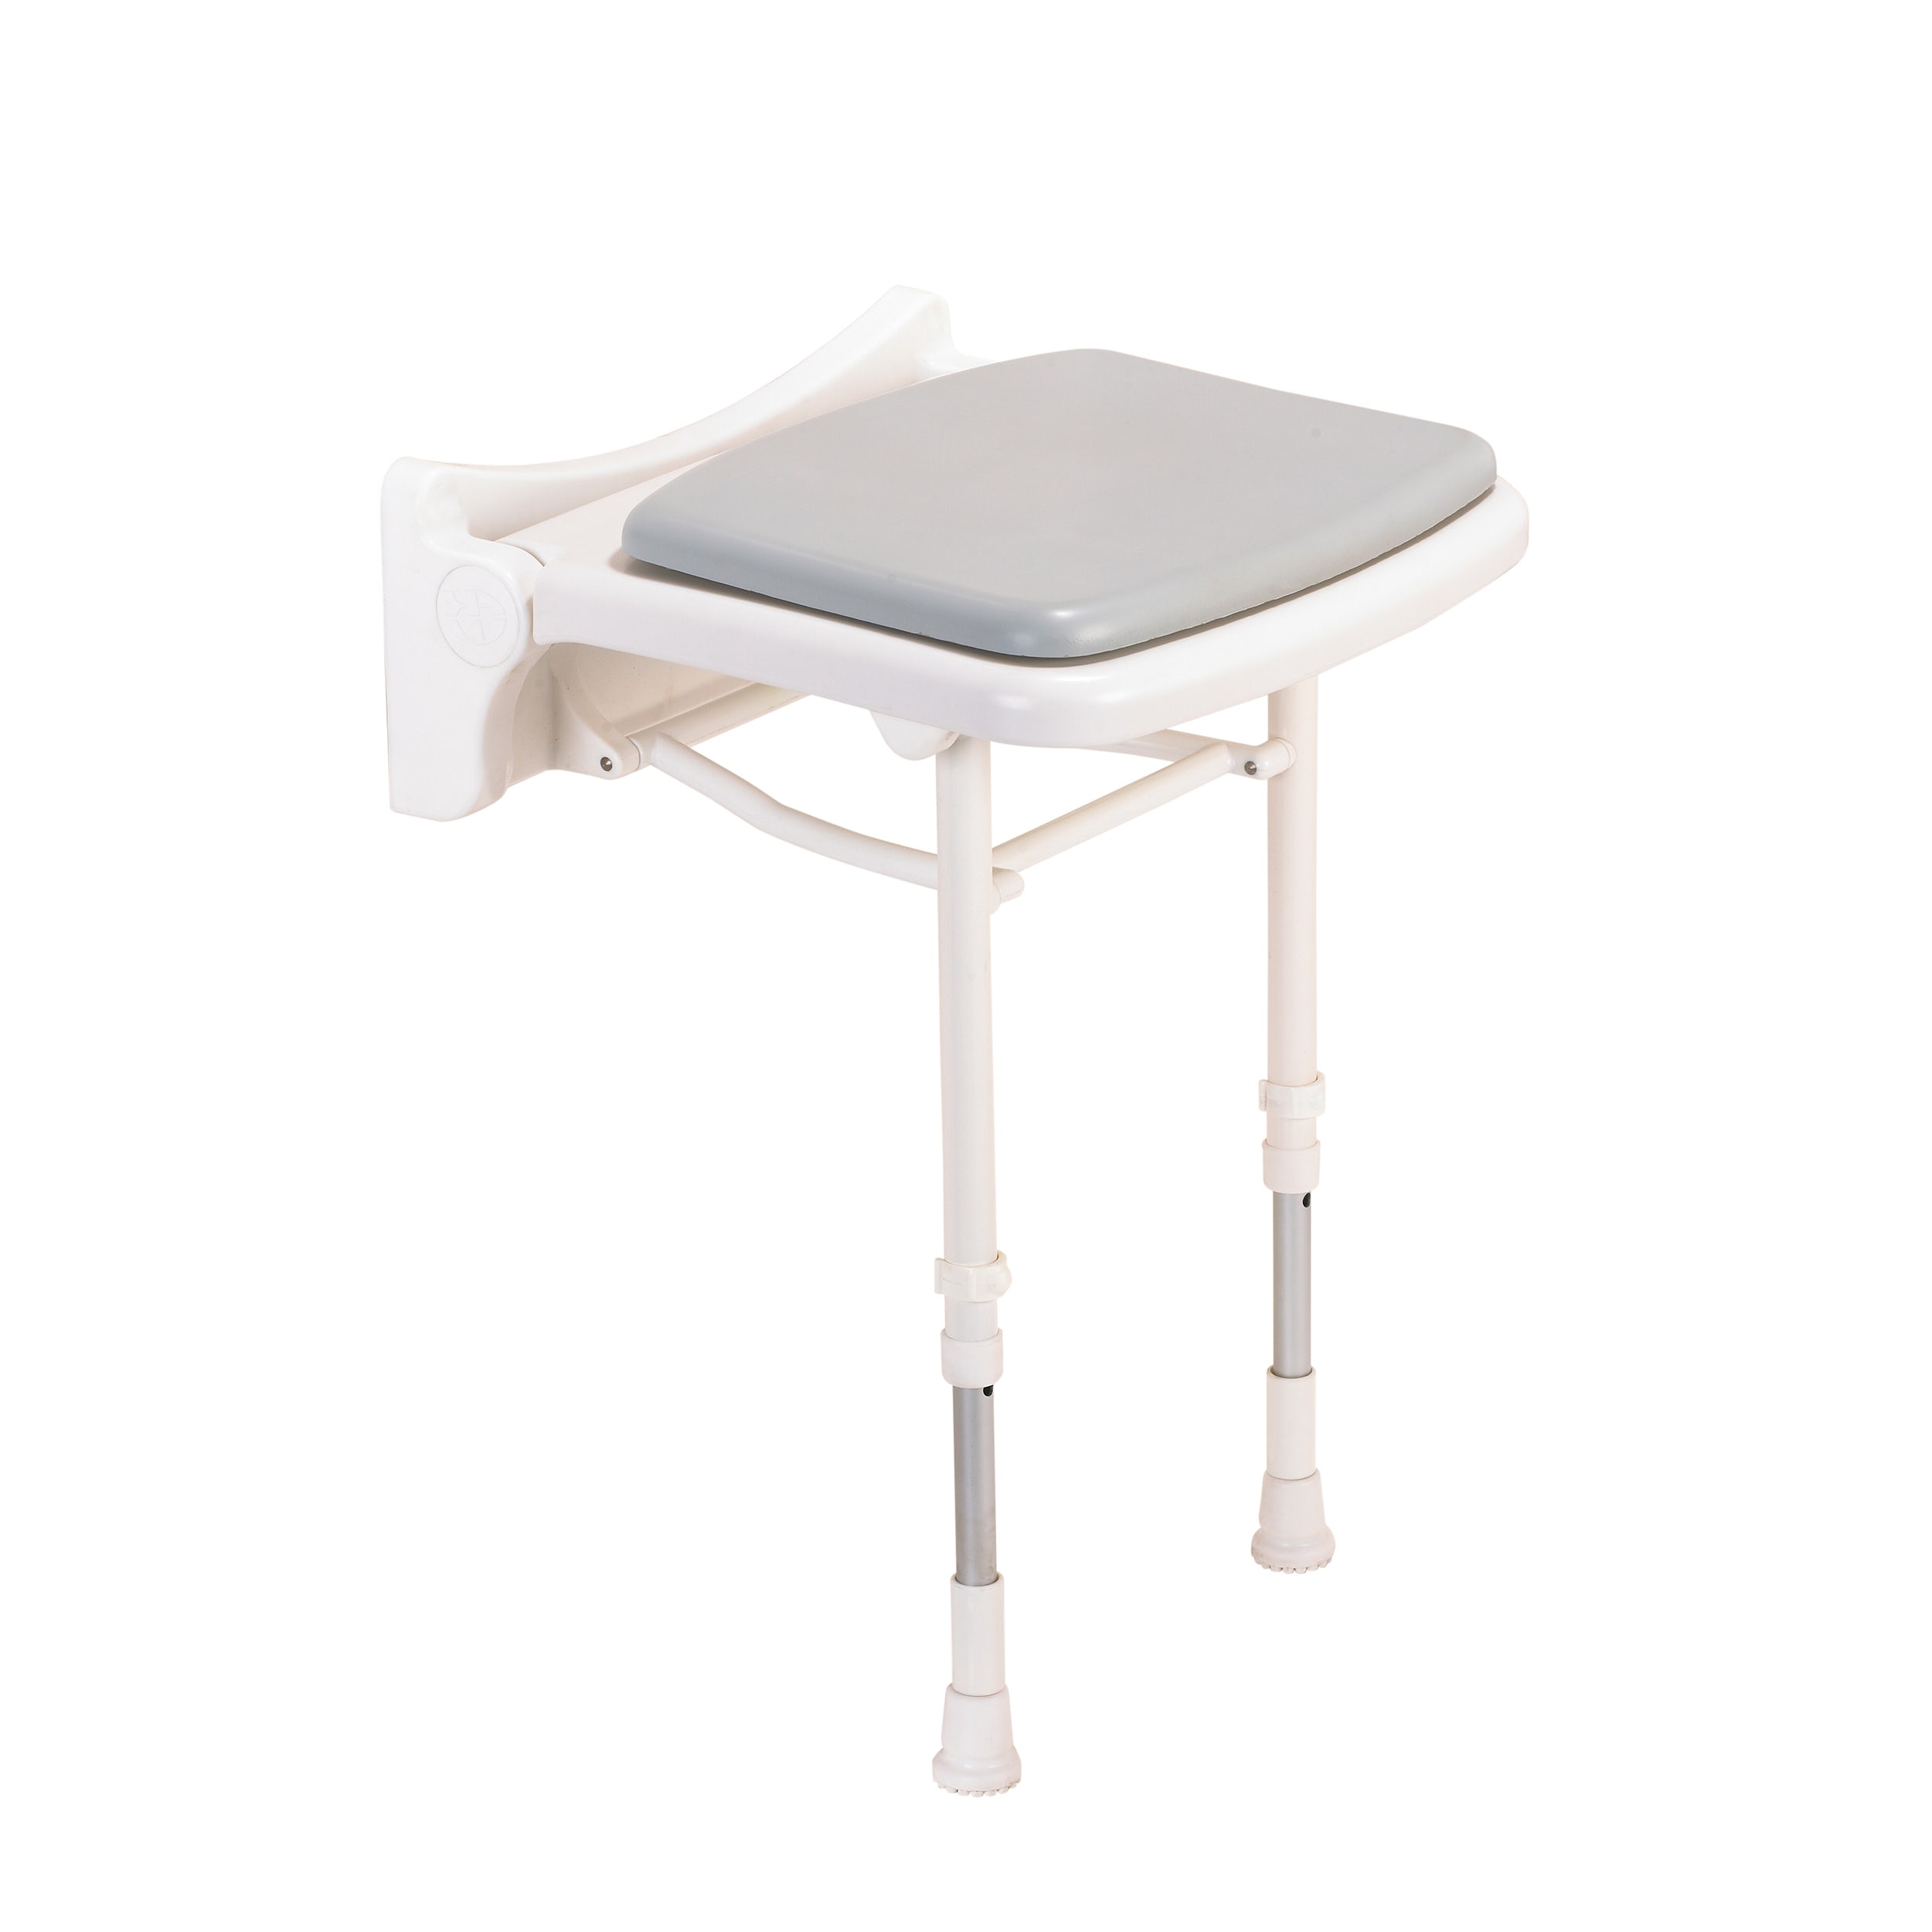 AKW 2000 series standard folding shower seat with grey pad - Sold by Victoria Plum